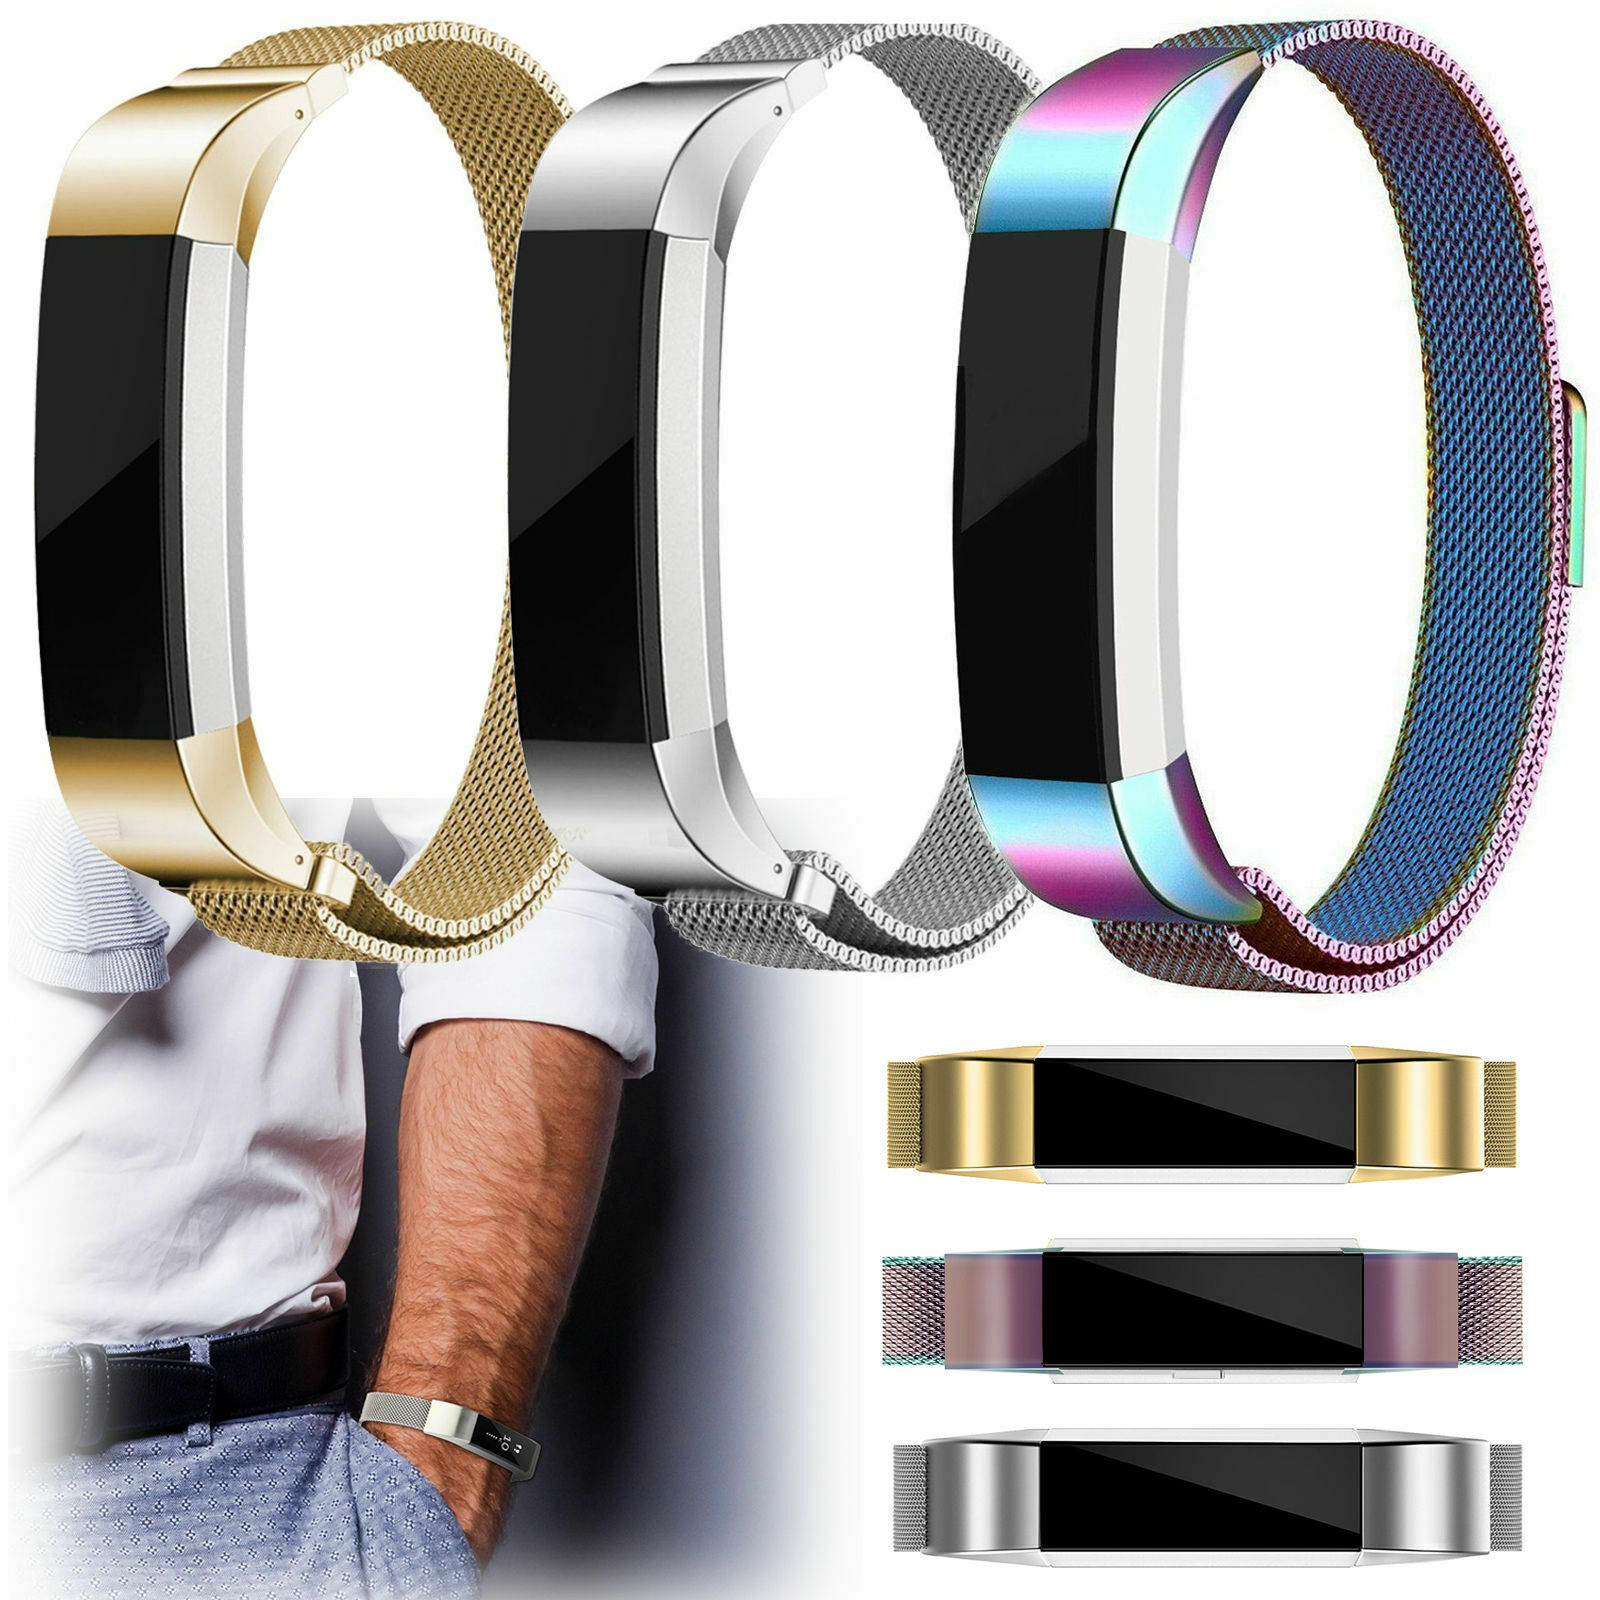 Eeekit Magnetic Loop Stainless Steel Wrist Band Strap For Fitbit Alta Hr Smartwatch Small Black 1 Of 11free Shipping